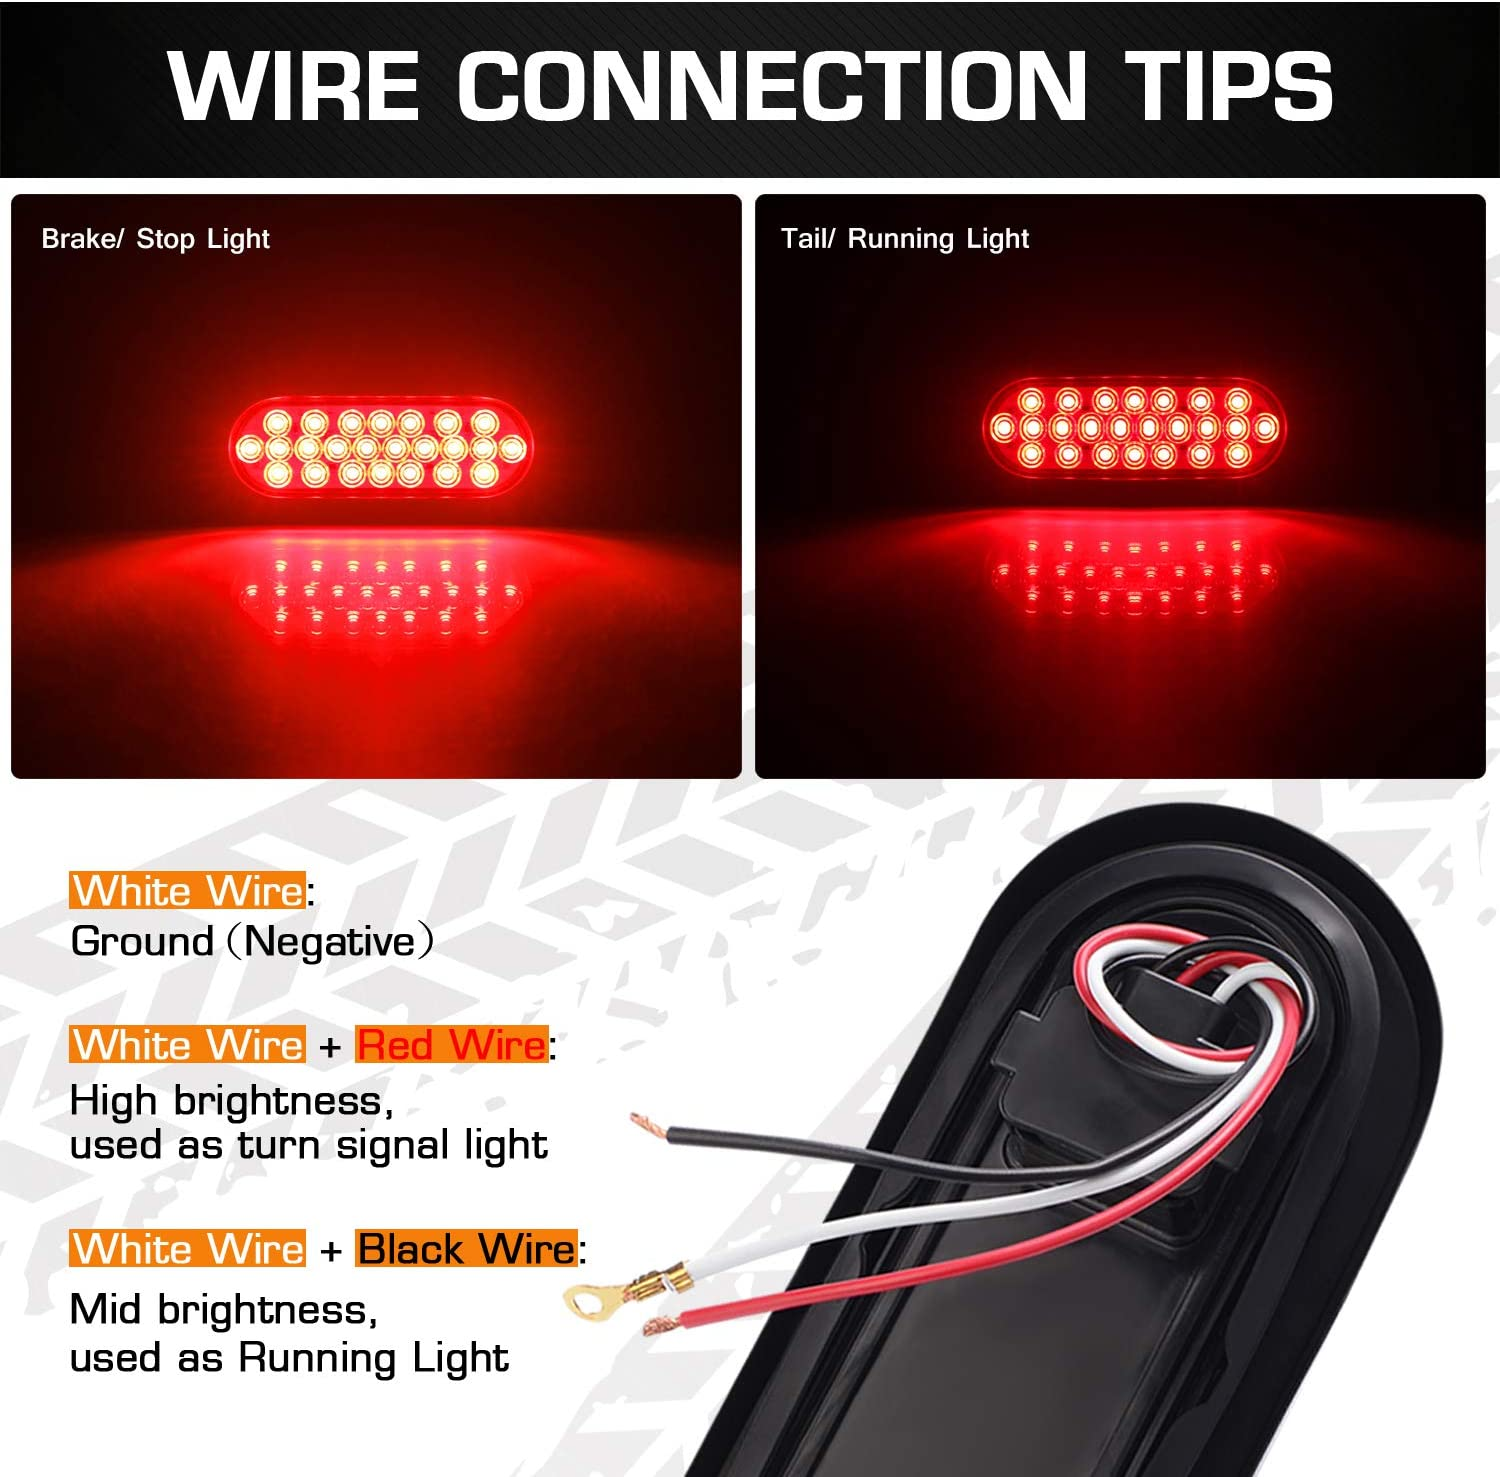 6 Oval Trailer Lights IP67 2 Pack DOT Certified Super Bright Red 24LED Brake Turn Stop Marker Reverse Tail Lights with Waterproof Rubber Gaskets for Boat Trailer Truck RV